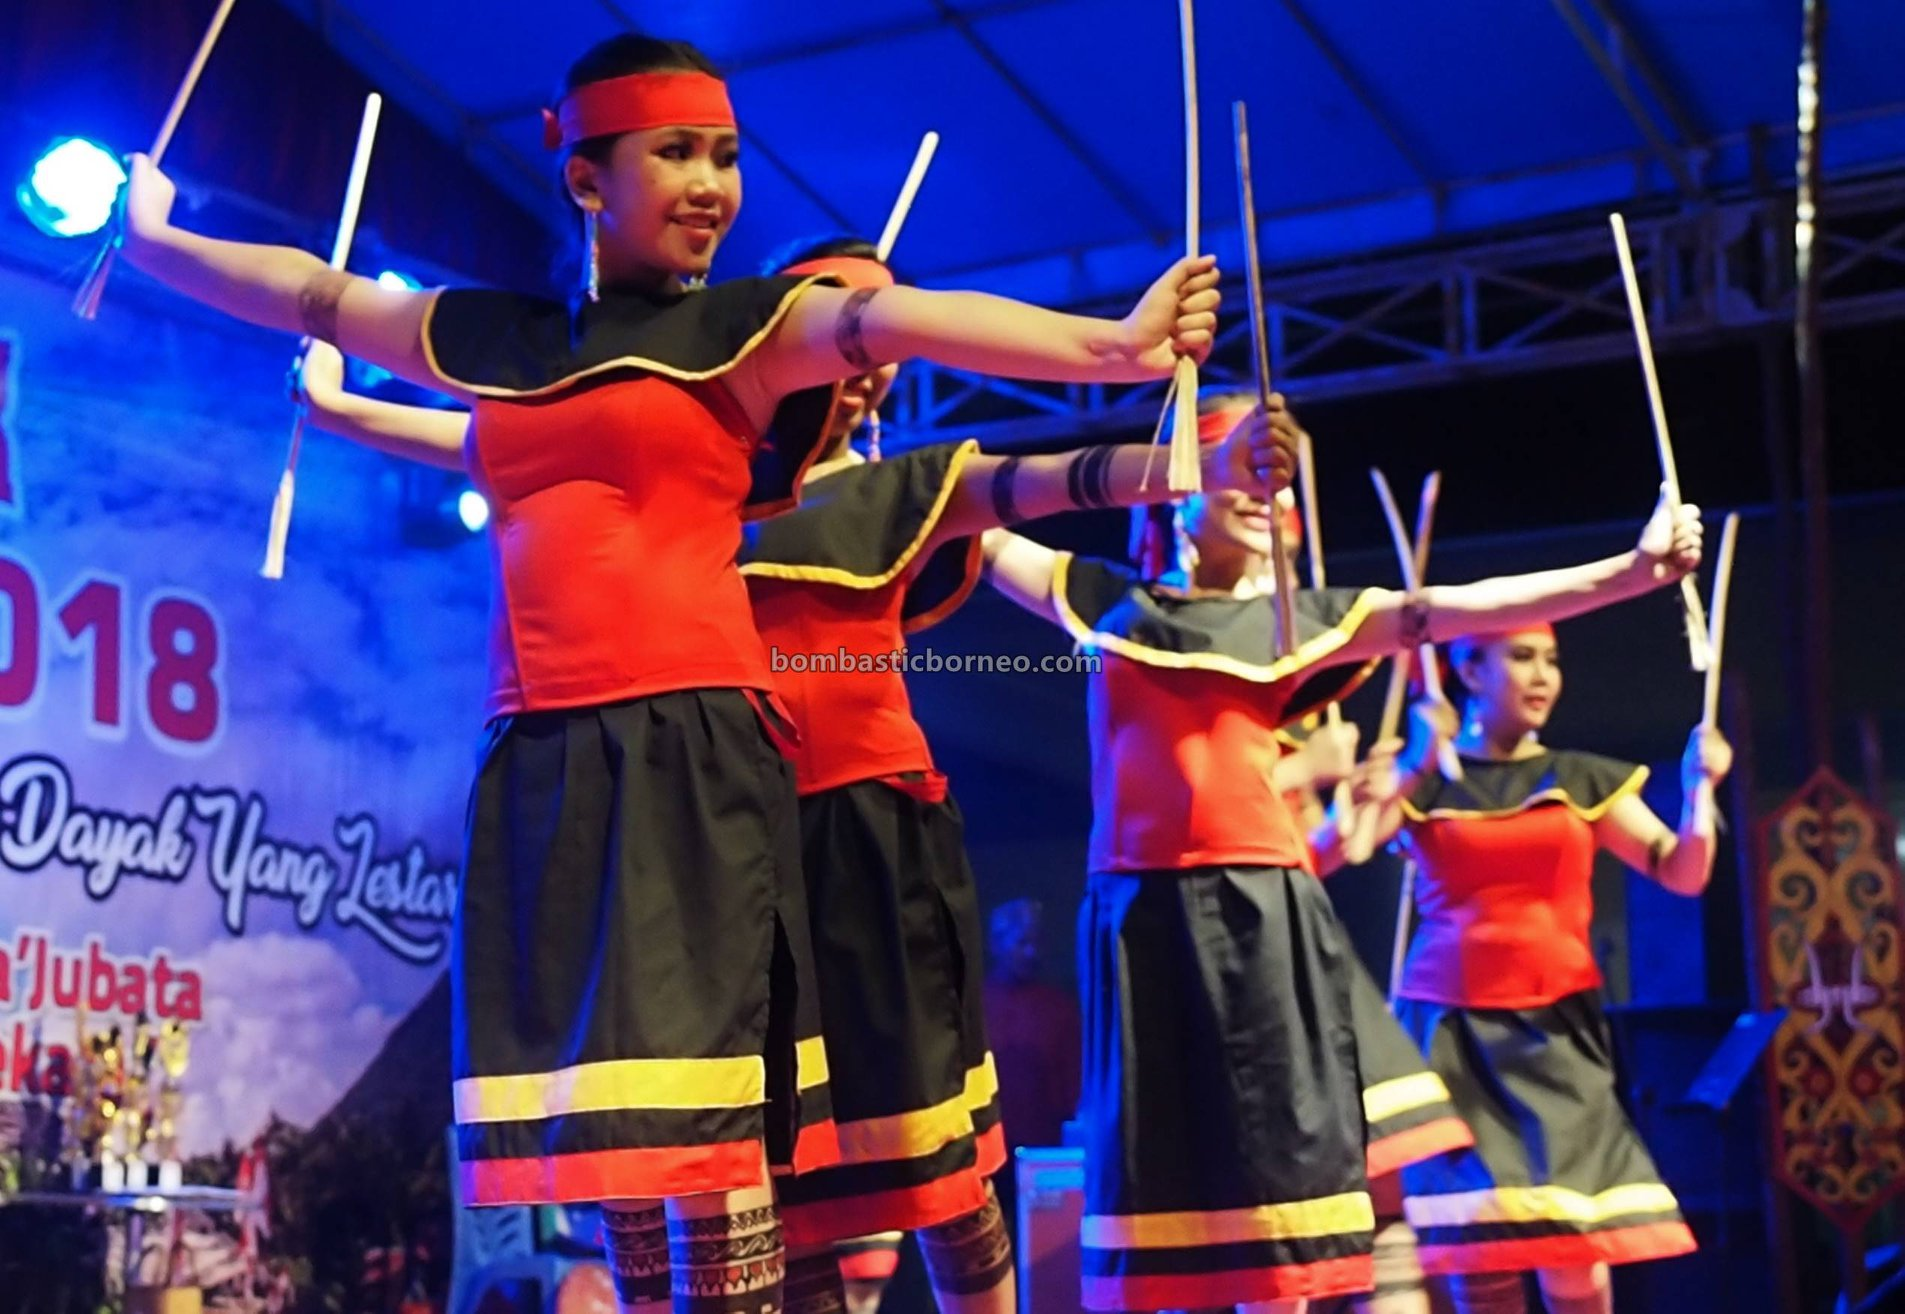 Gawai Dayak Sintang, authentic, traditional, destination, cultural dance, event, Indonesia, ethnic, native, ethnic, Tourism, tourist attraction, cross border, 婆羅洲原住民部落, 西加里曼丹达雅克